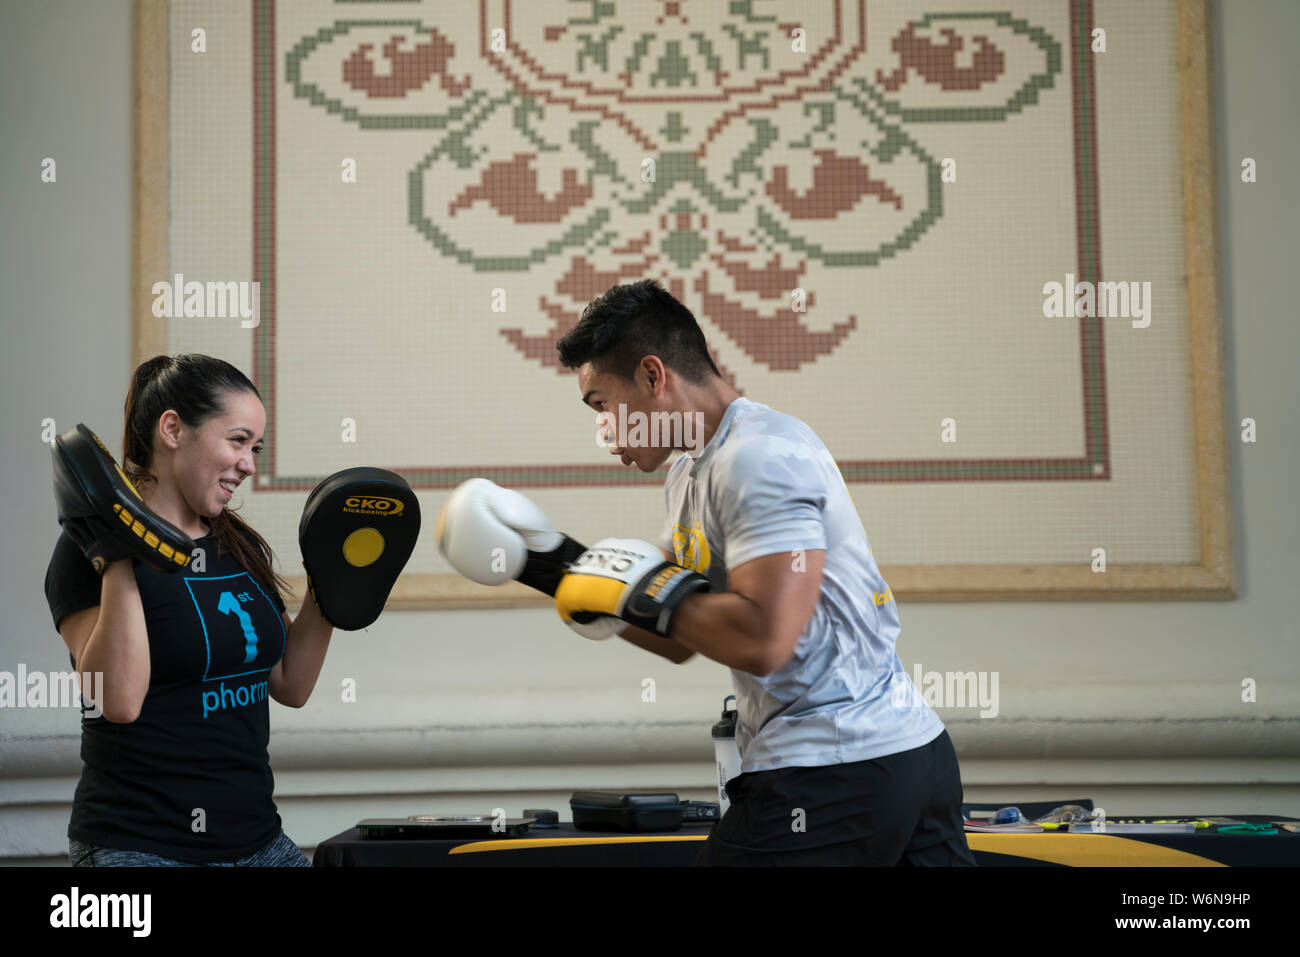 Man and Woman Boxing Stock Photo